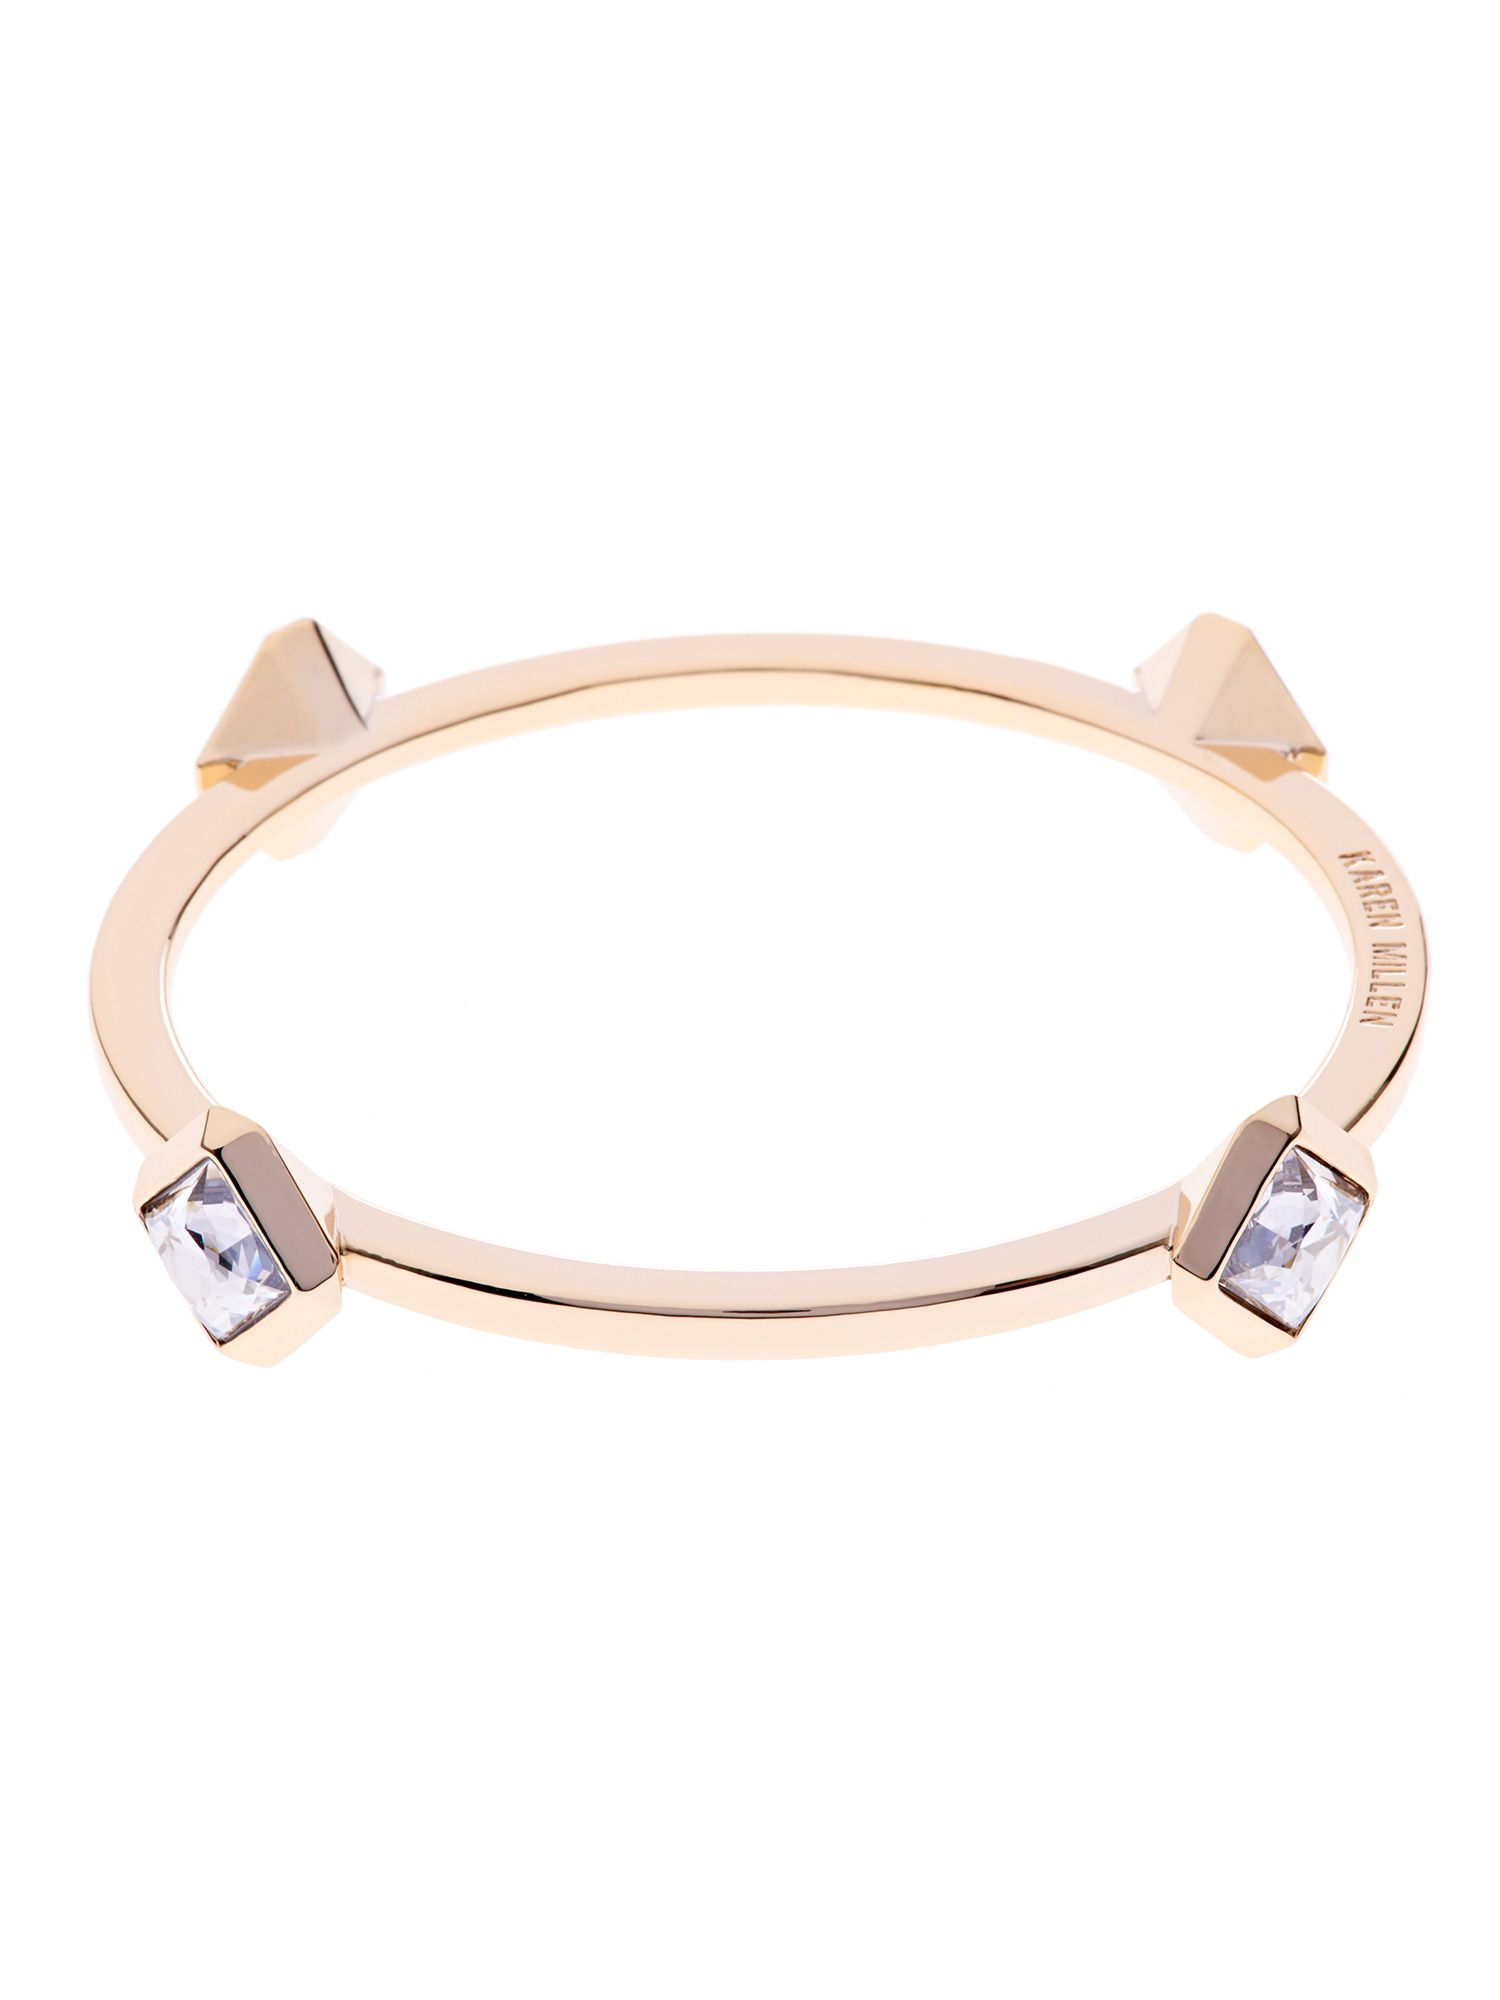 Geometric crystal bangle